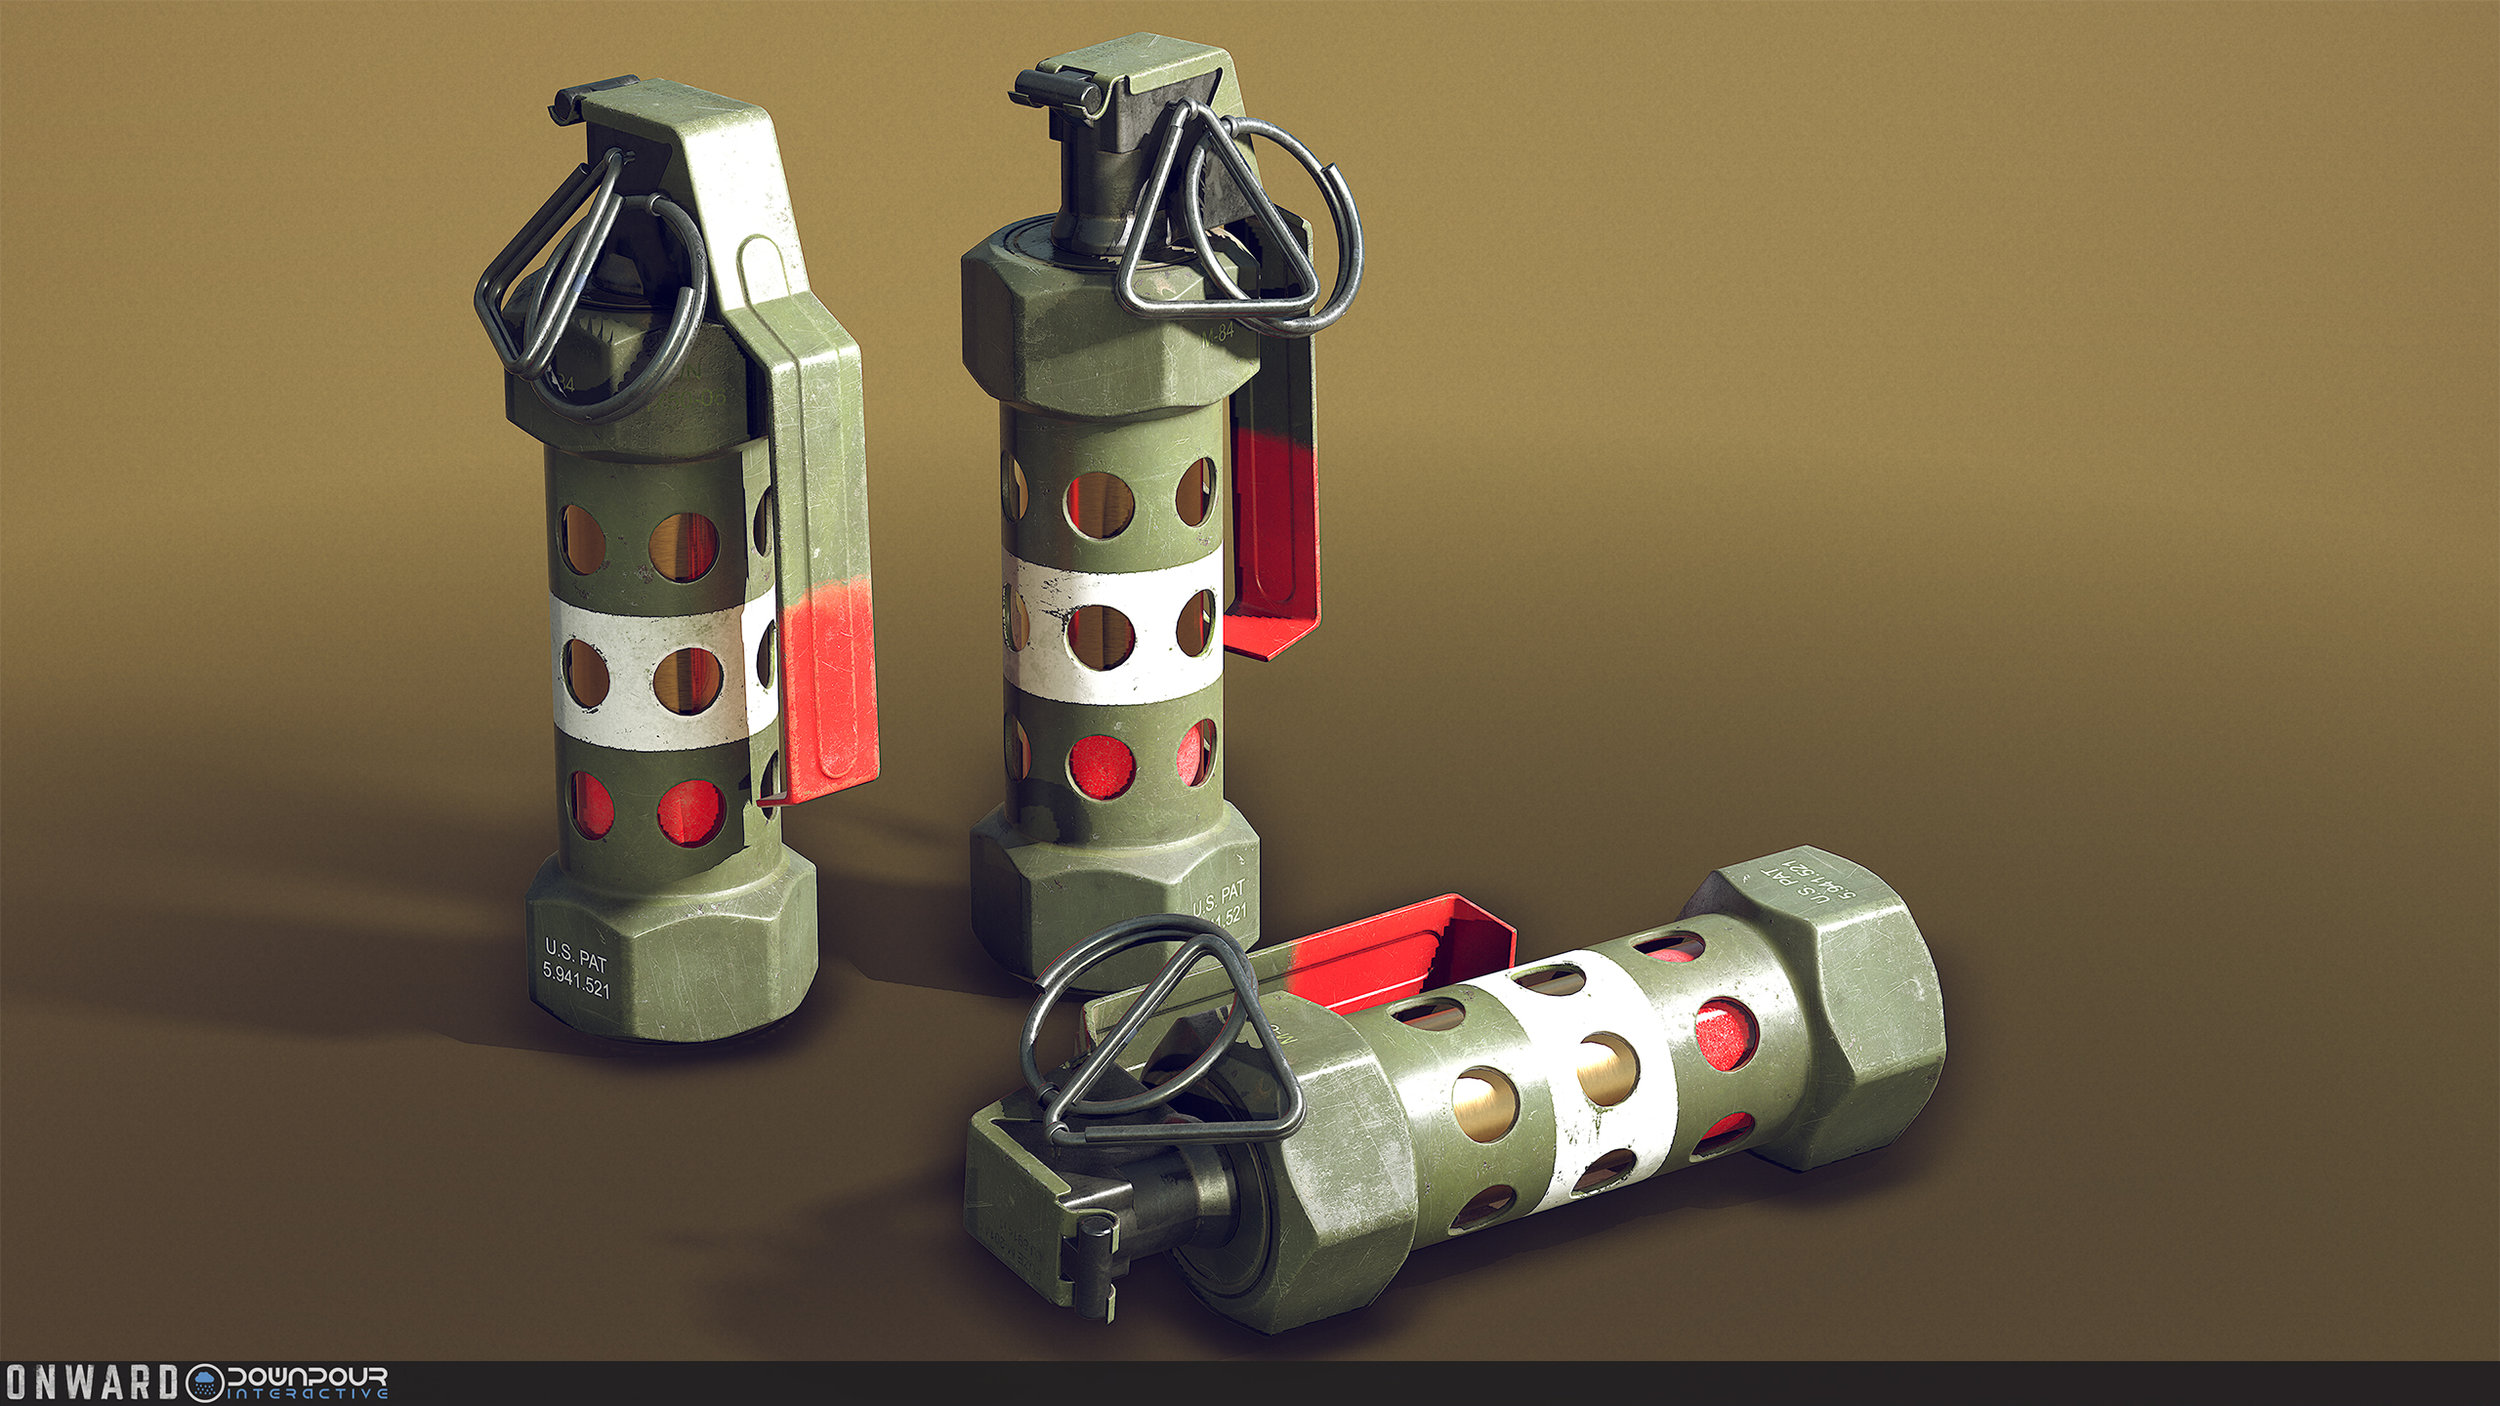 New replacement model for the Flash Grenades.